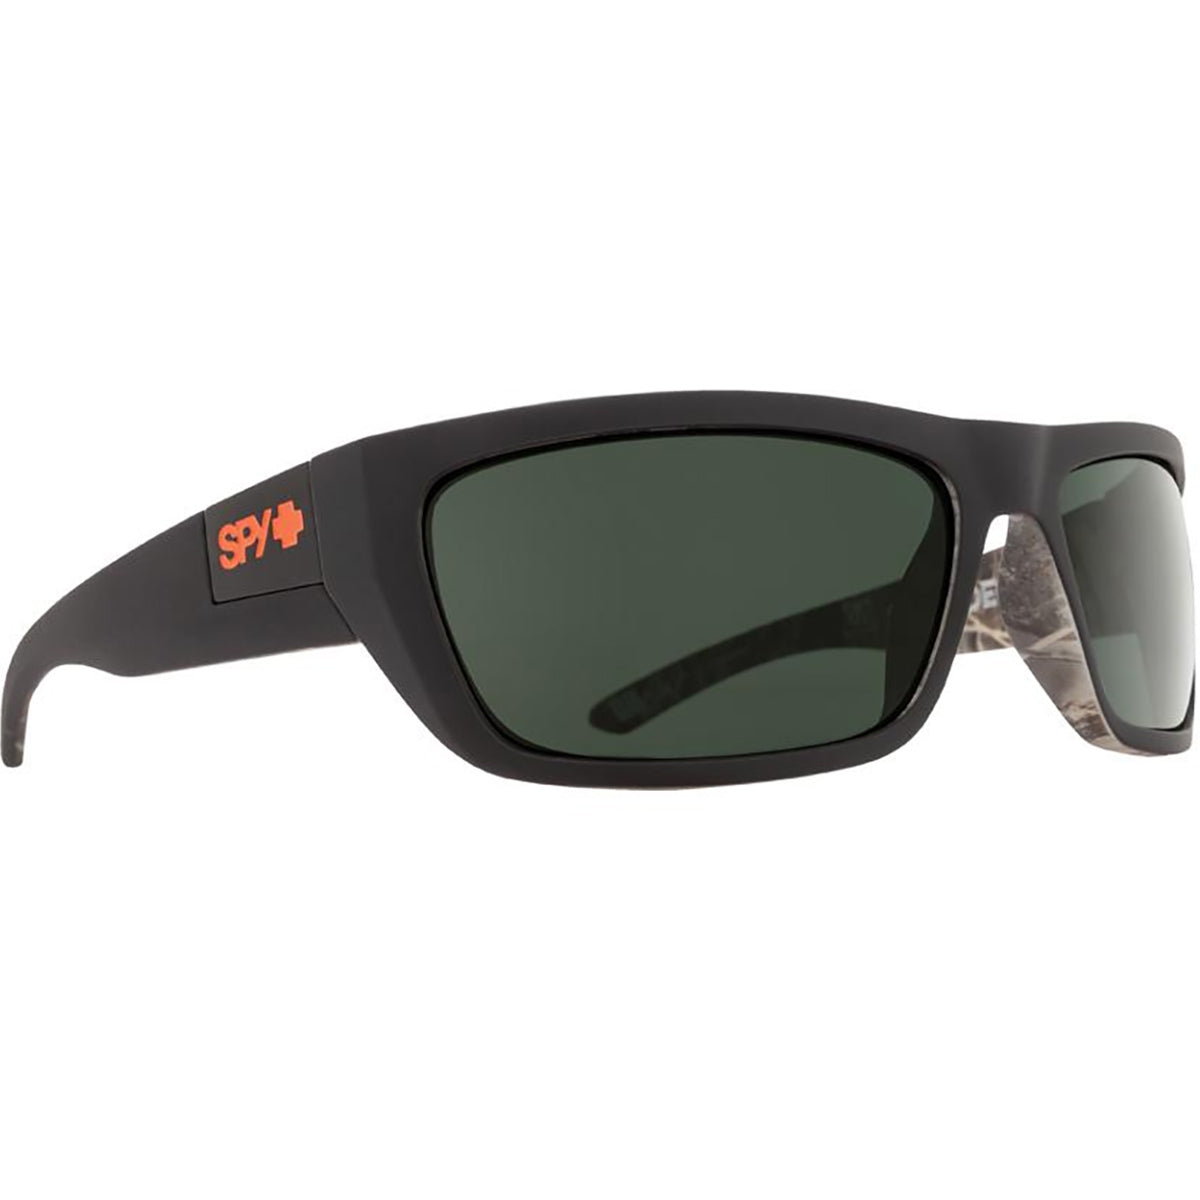 bf53a576a69 Spy Optic Dega Men s Lifestyle Polarized Sunglasses – Shop for Surf ...